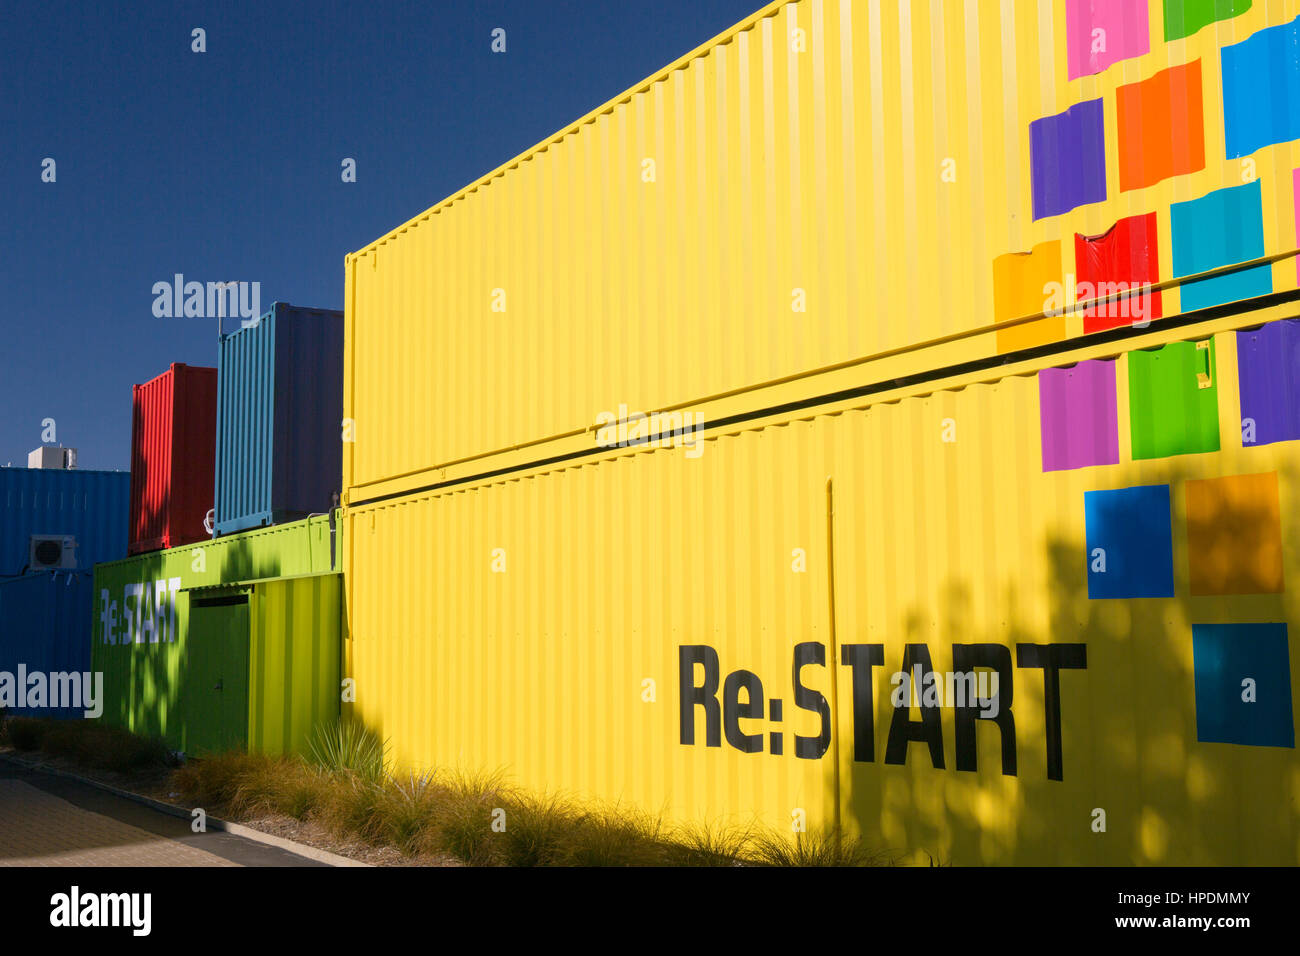 Start And Restart Stock Photos & Start And Restart Stock Images - Alamy